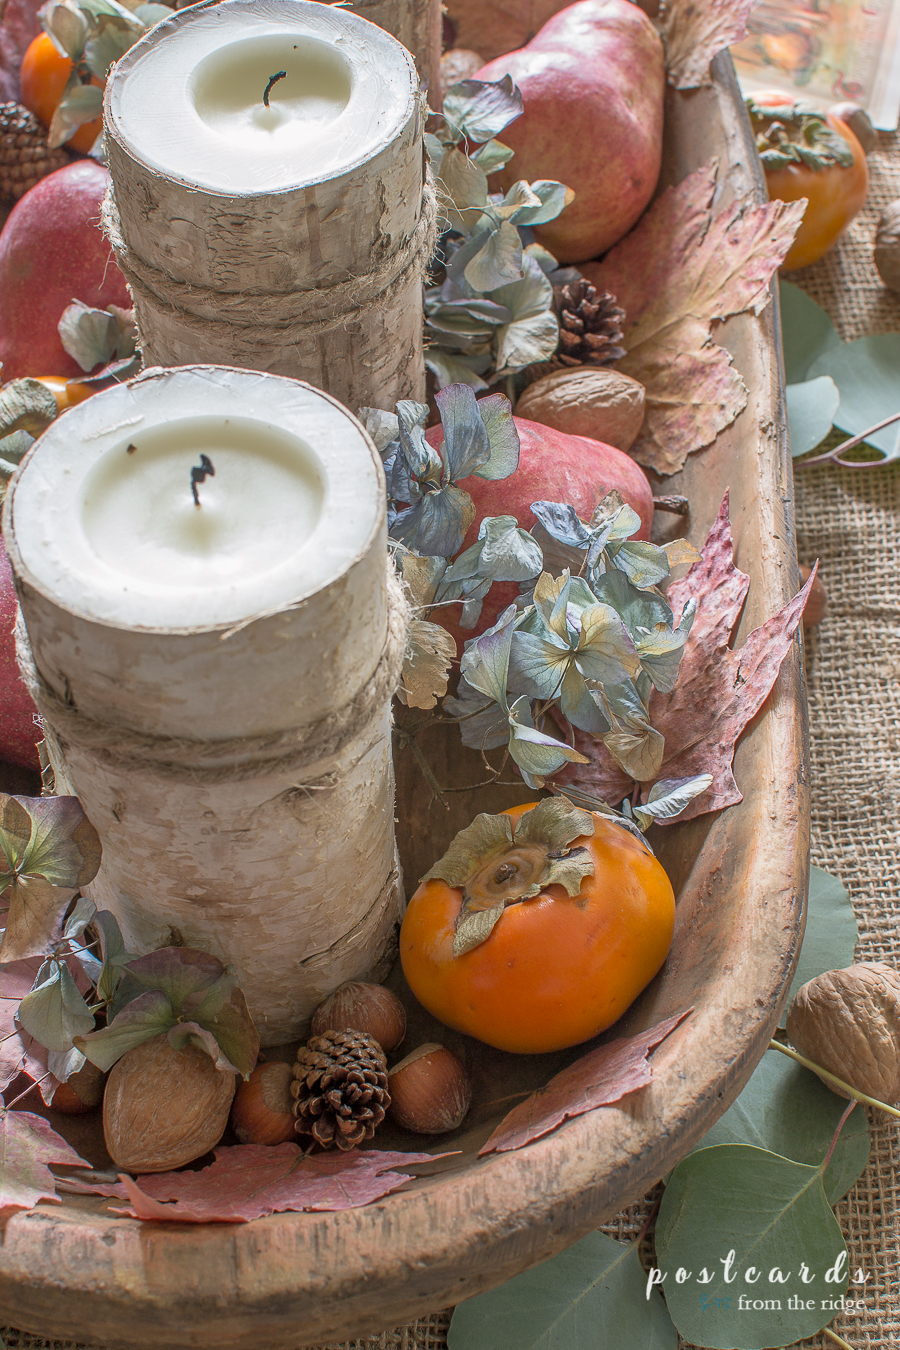 birch wrapped candles with persimmons and nuts